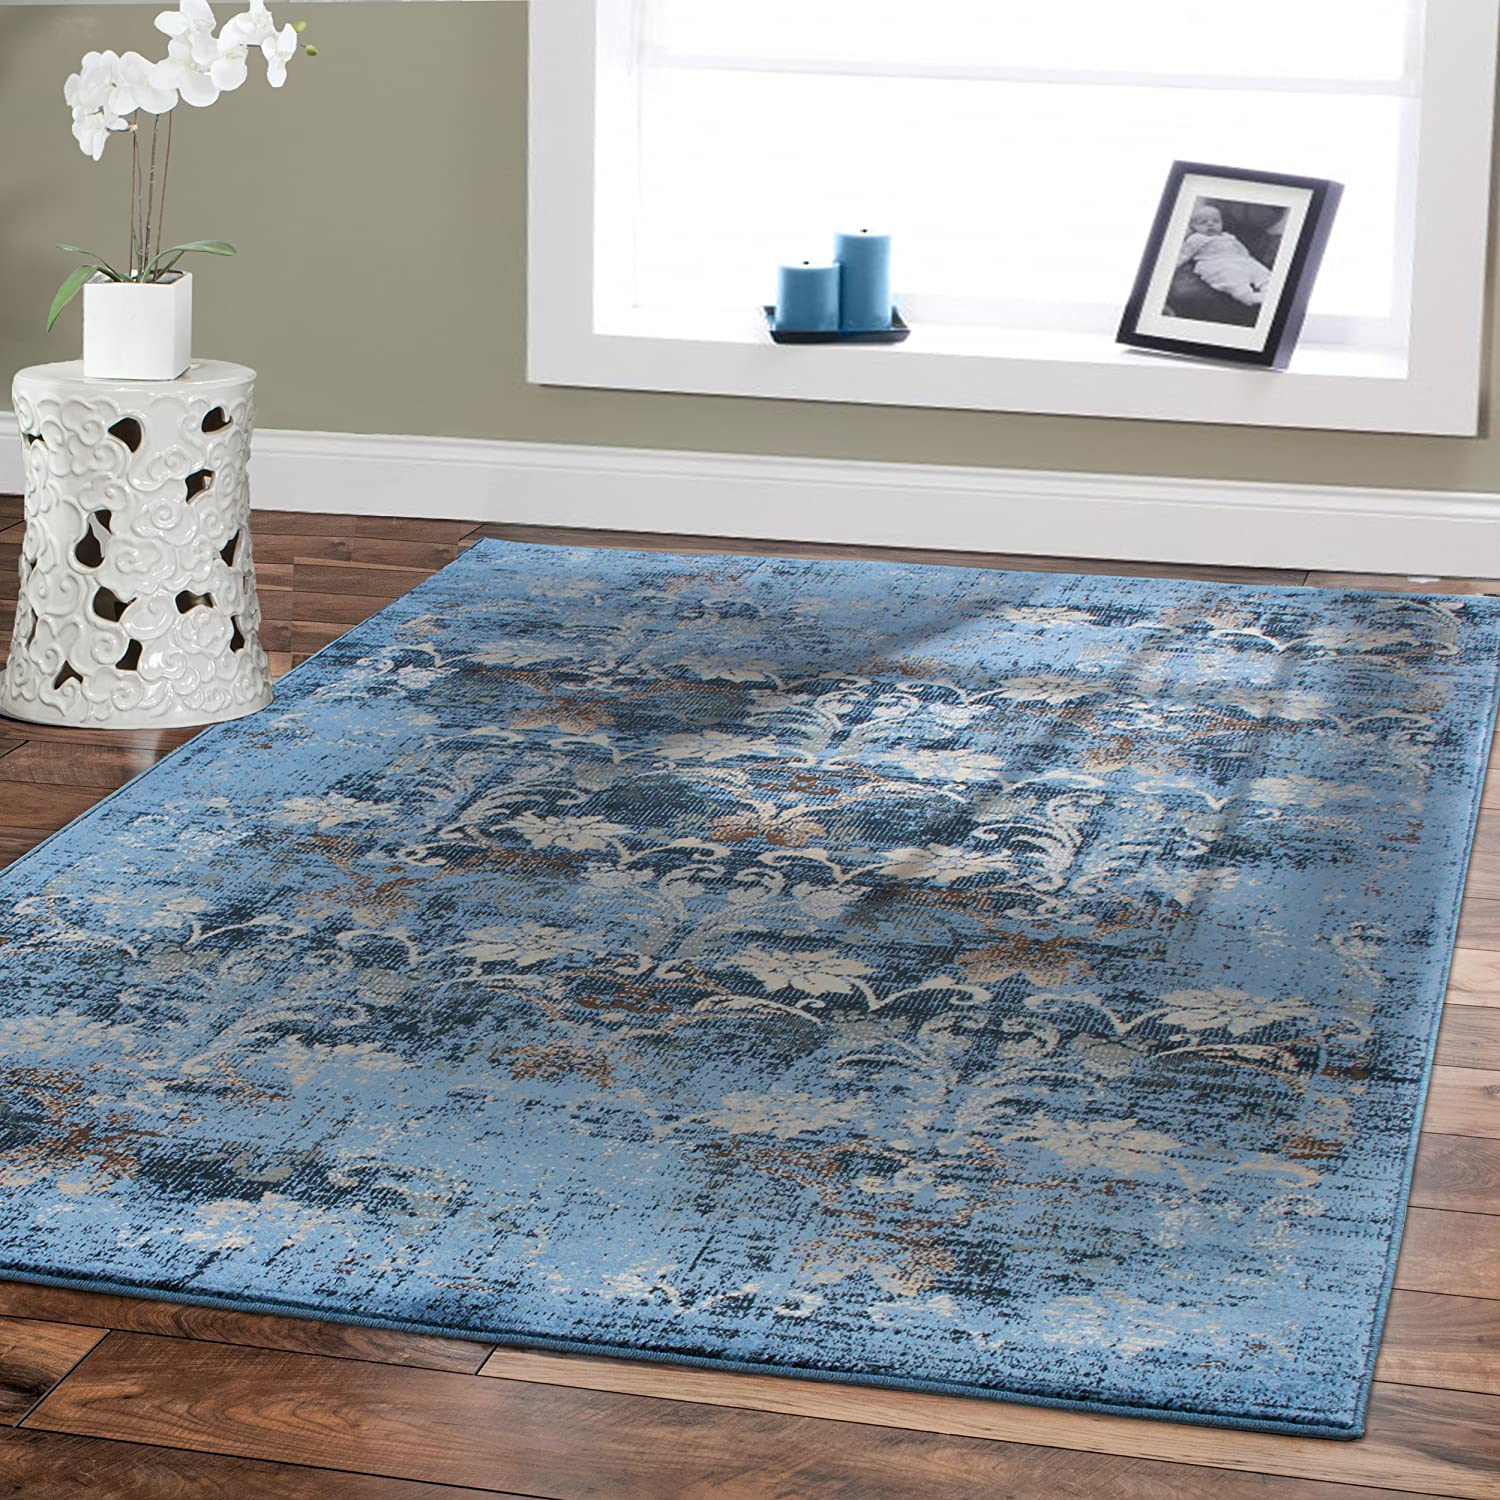 Wonderful Amazon.com: Premium Soft 8x11 Modern Rugs For Dining Room Blue  GA74